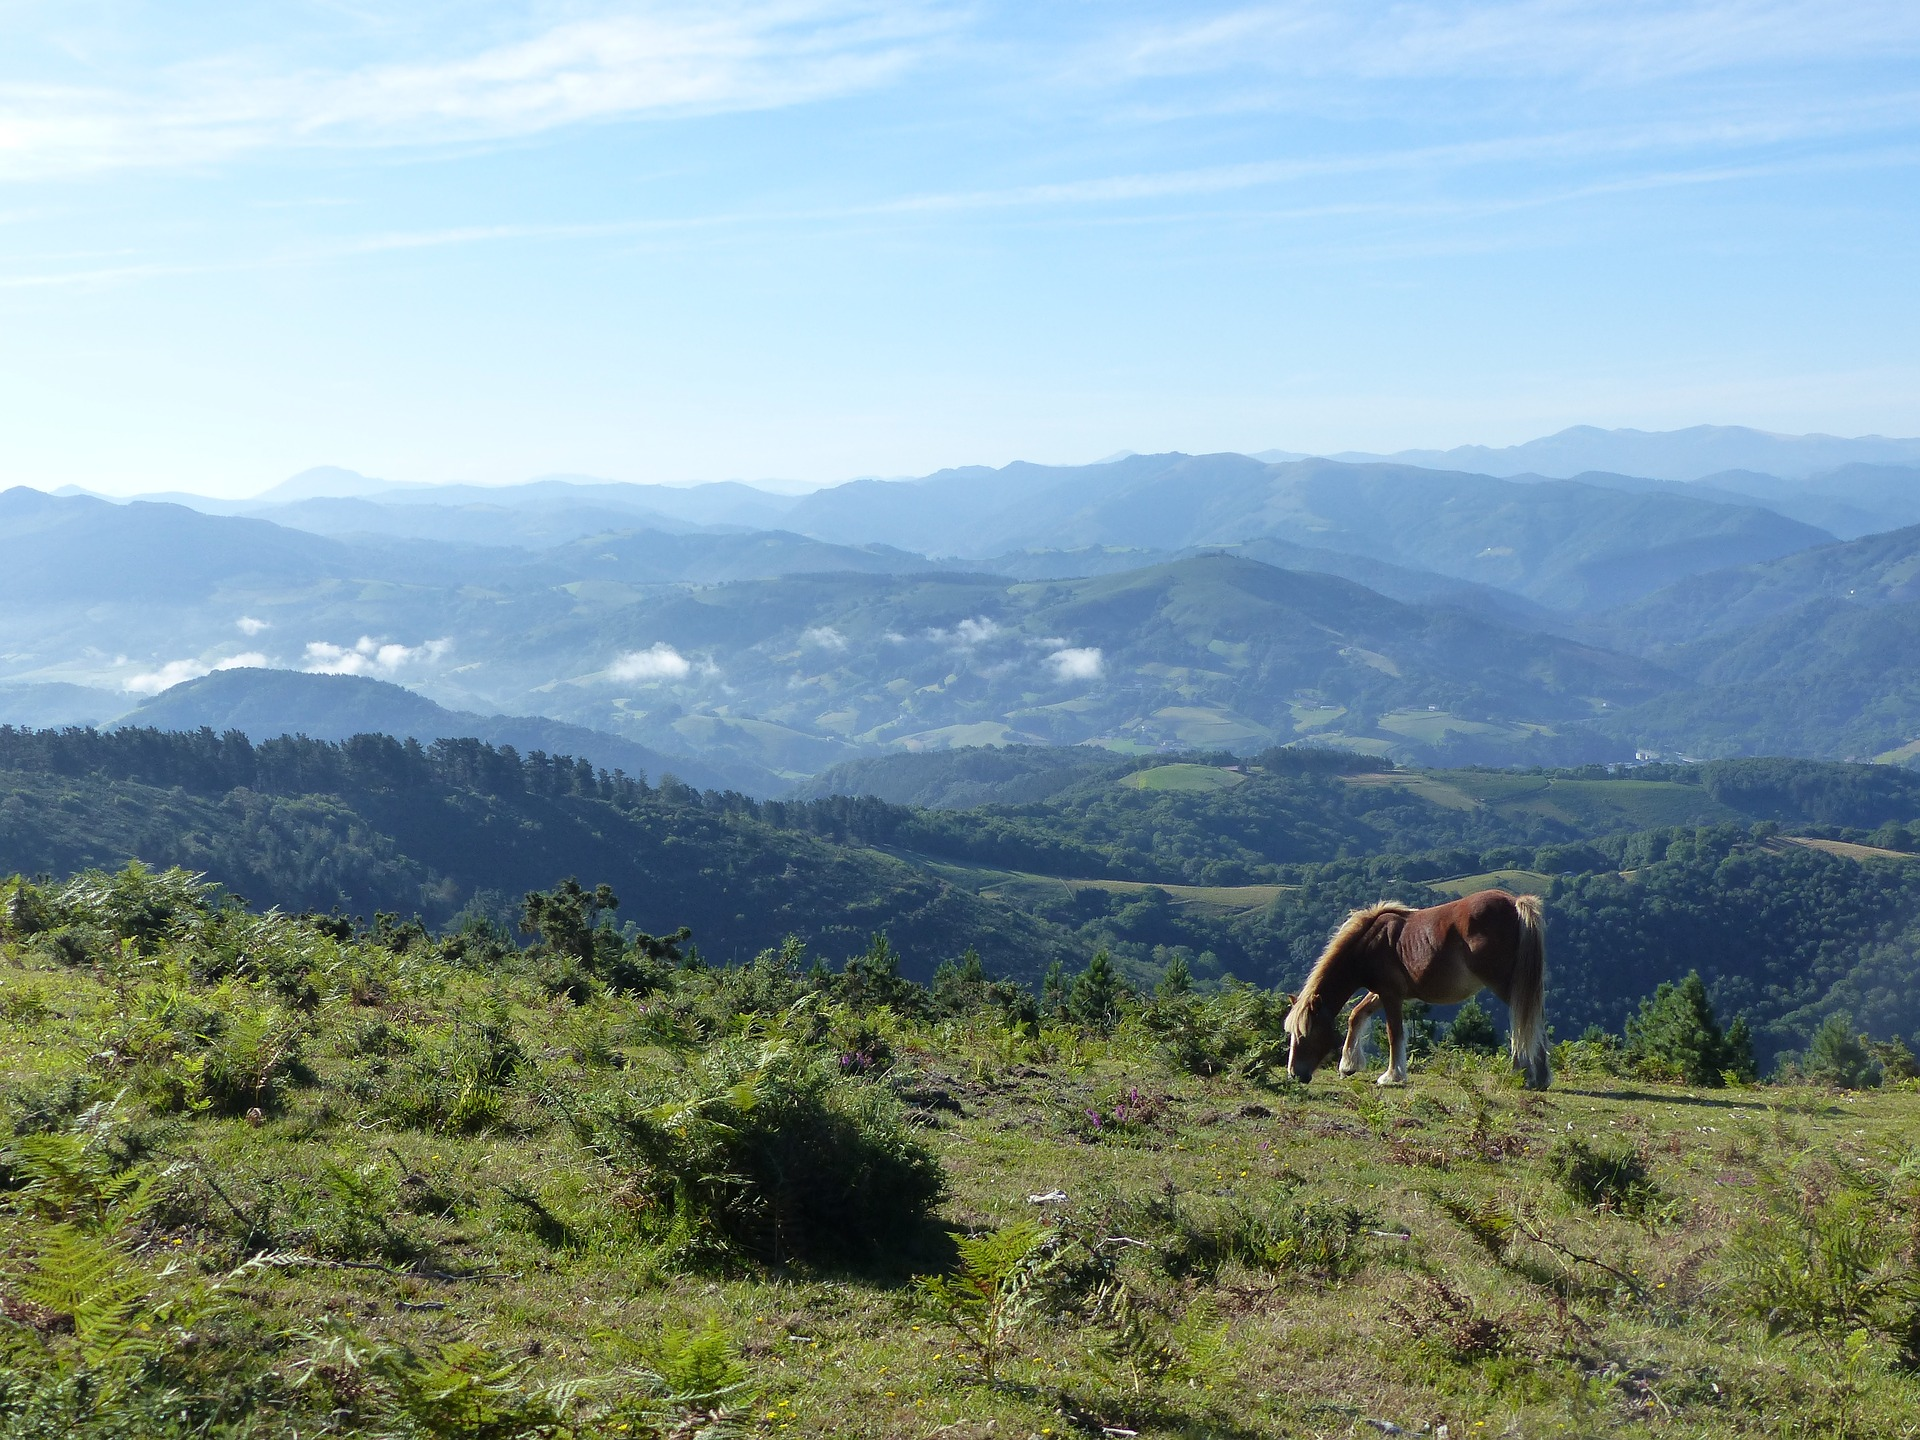 Cheval_nature_Pays_Basque_CC0.jpg?1544881951